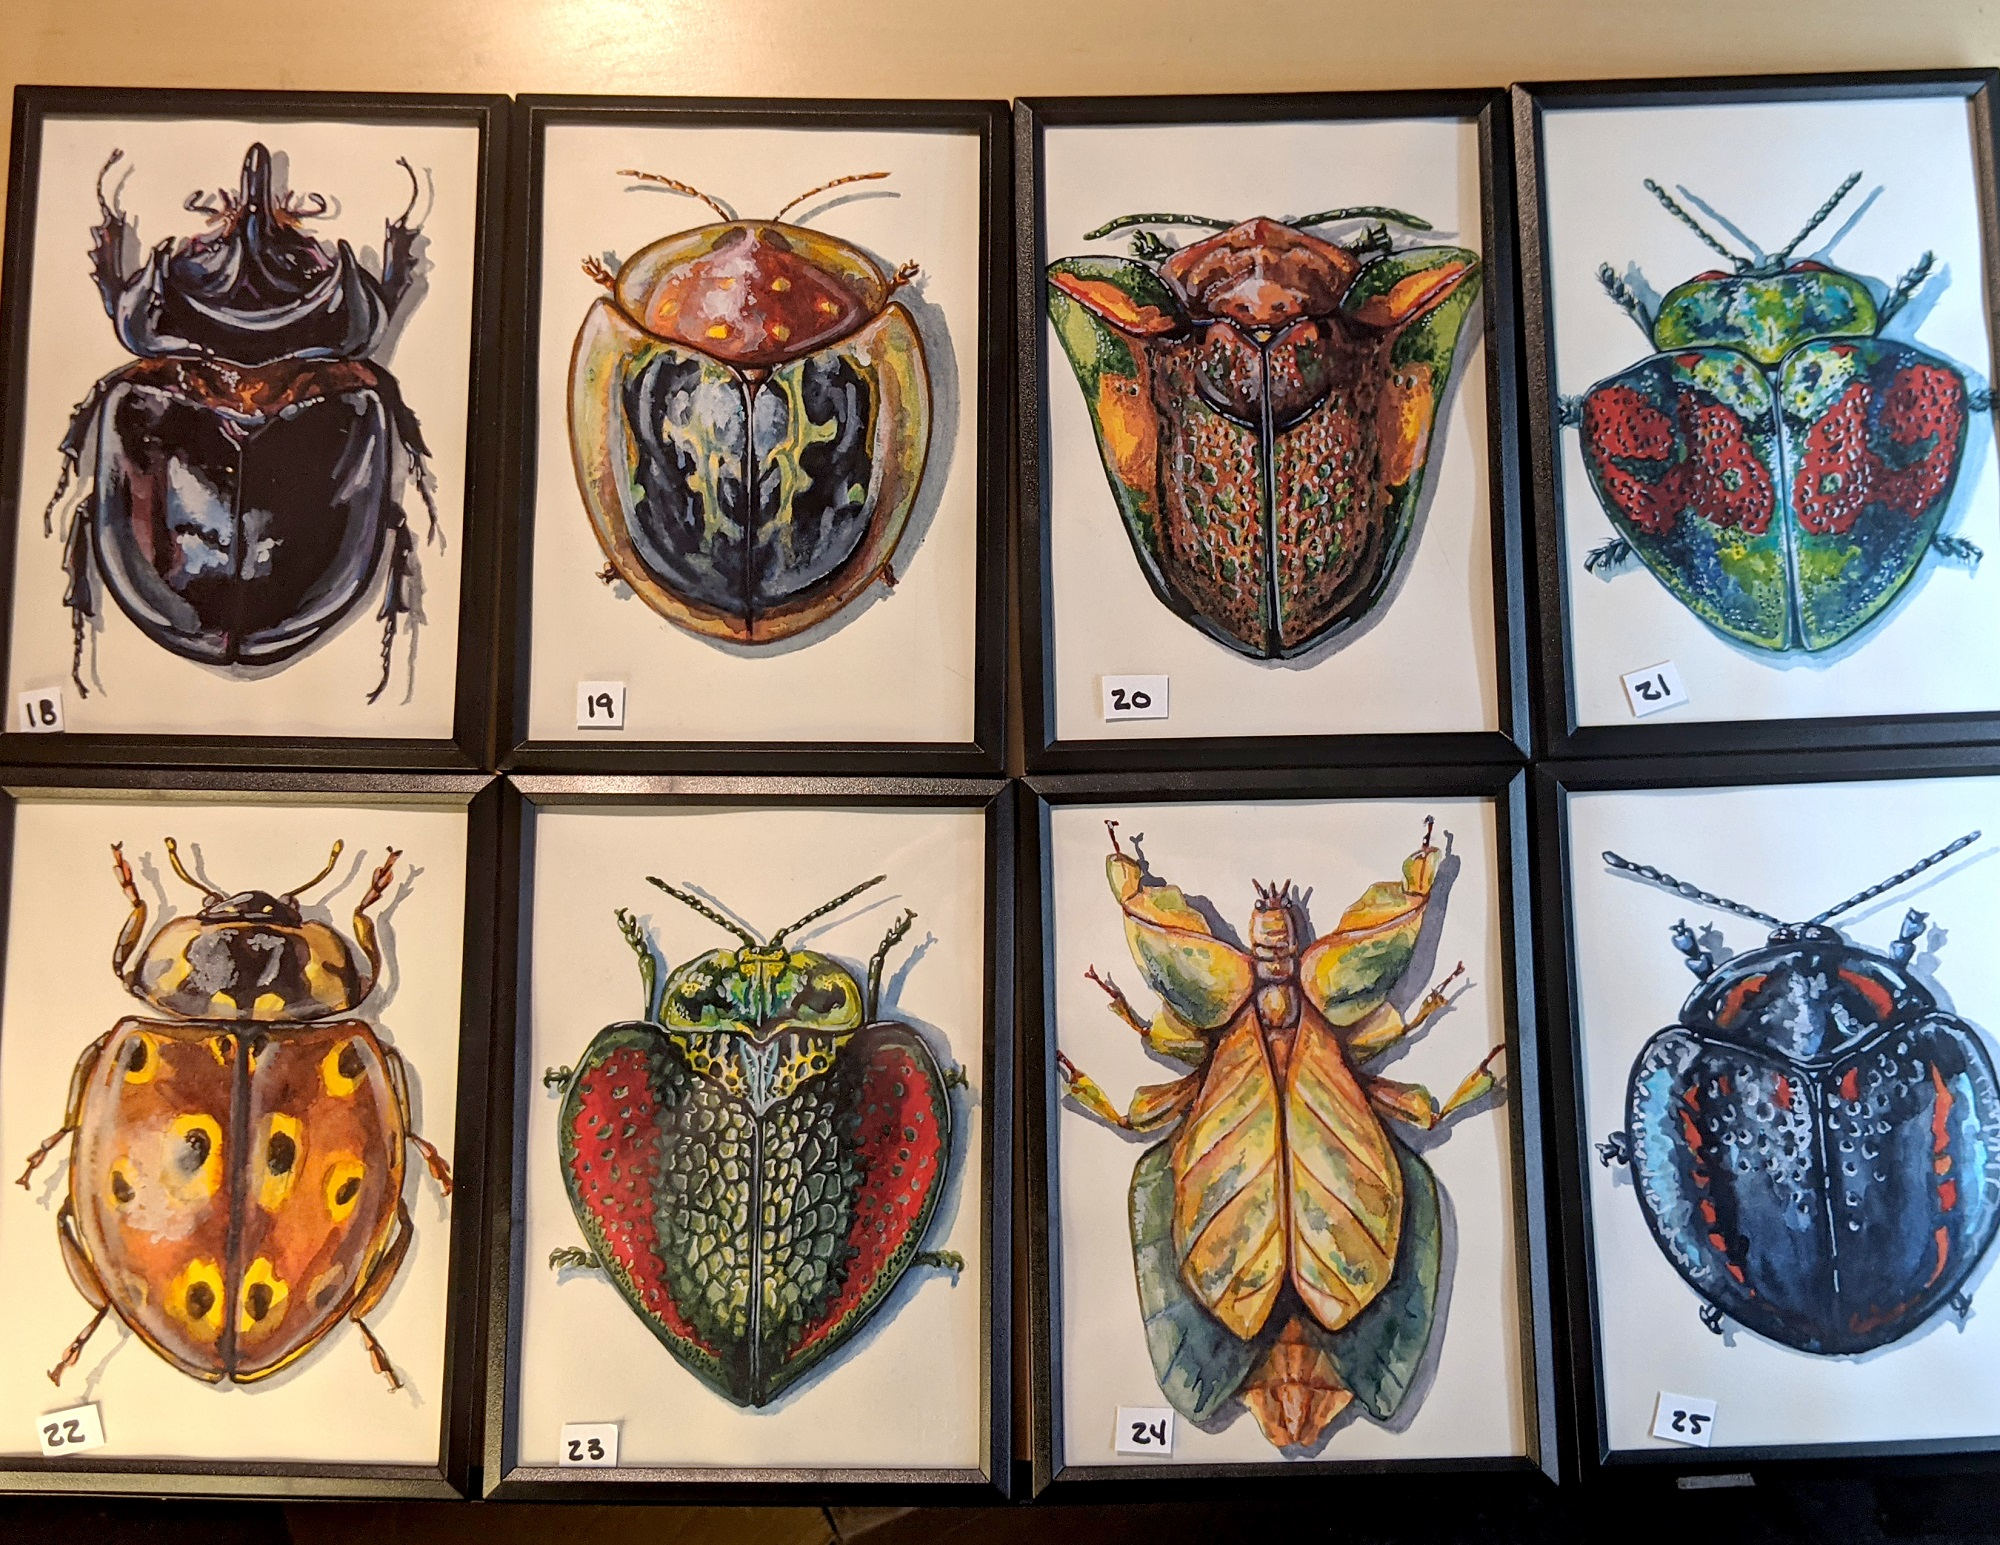 Small Insects 18 – 25 By Martha Iserman (Petals And Wings Exhibition)